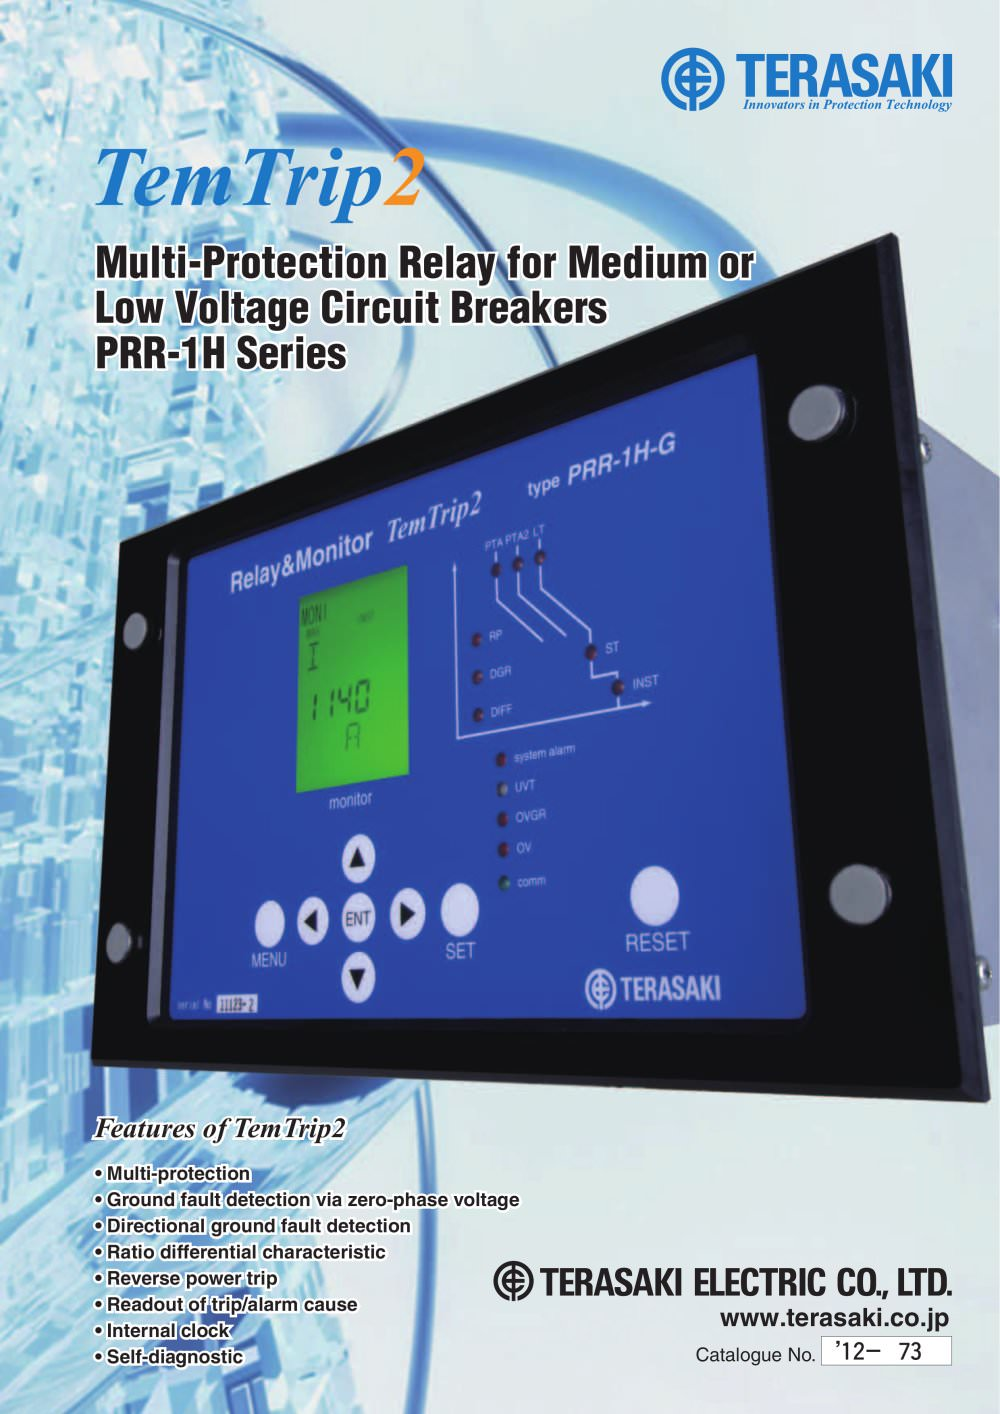 MultiProtection Relay TemTrip Terasaki Electric Circuit - Protection relays and circuit breakers